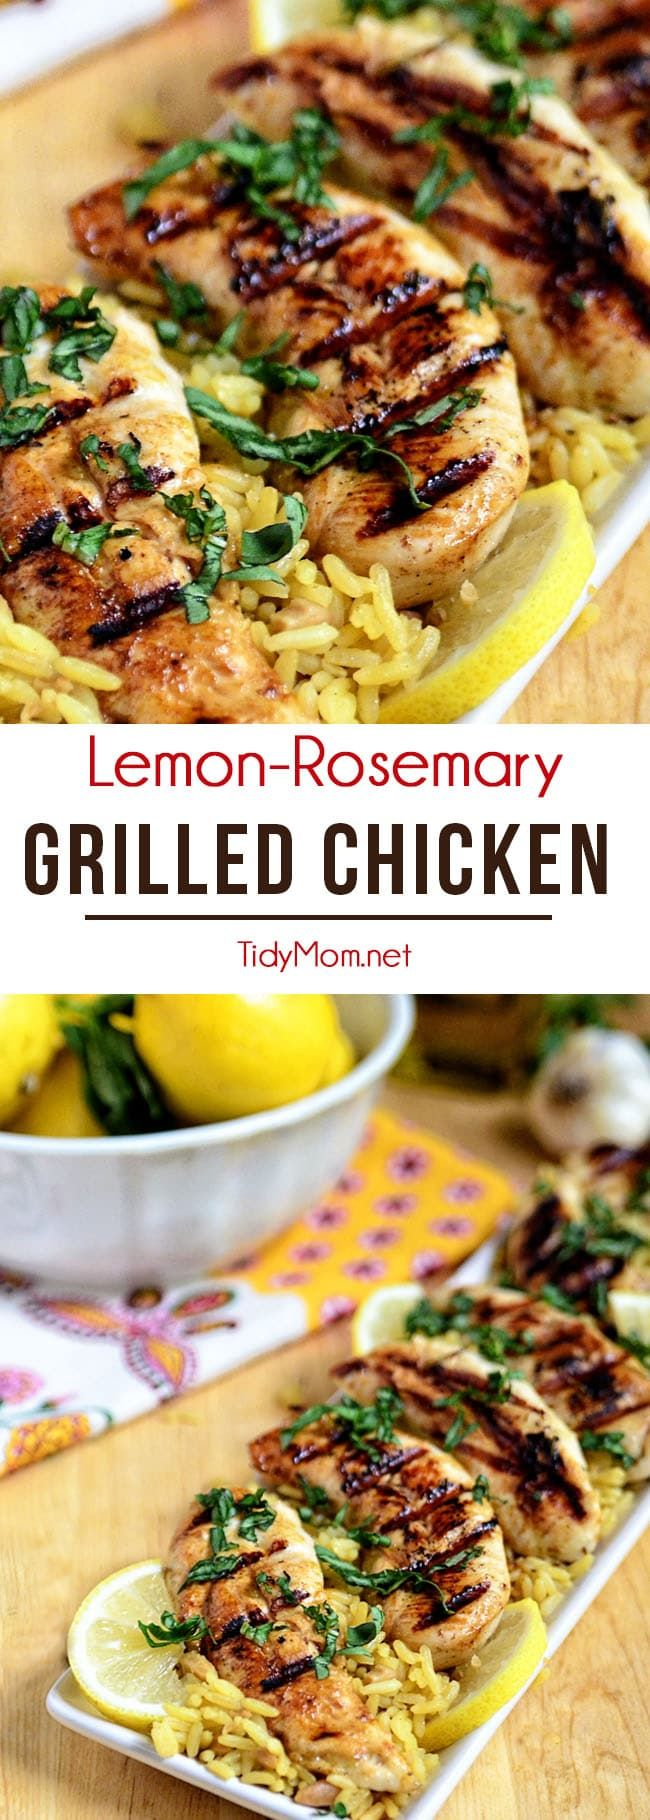 This Lemon Rosemary Grilled Chicken cooks up on the grill in under 10 minutes! Marinade ahead of ti